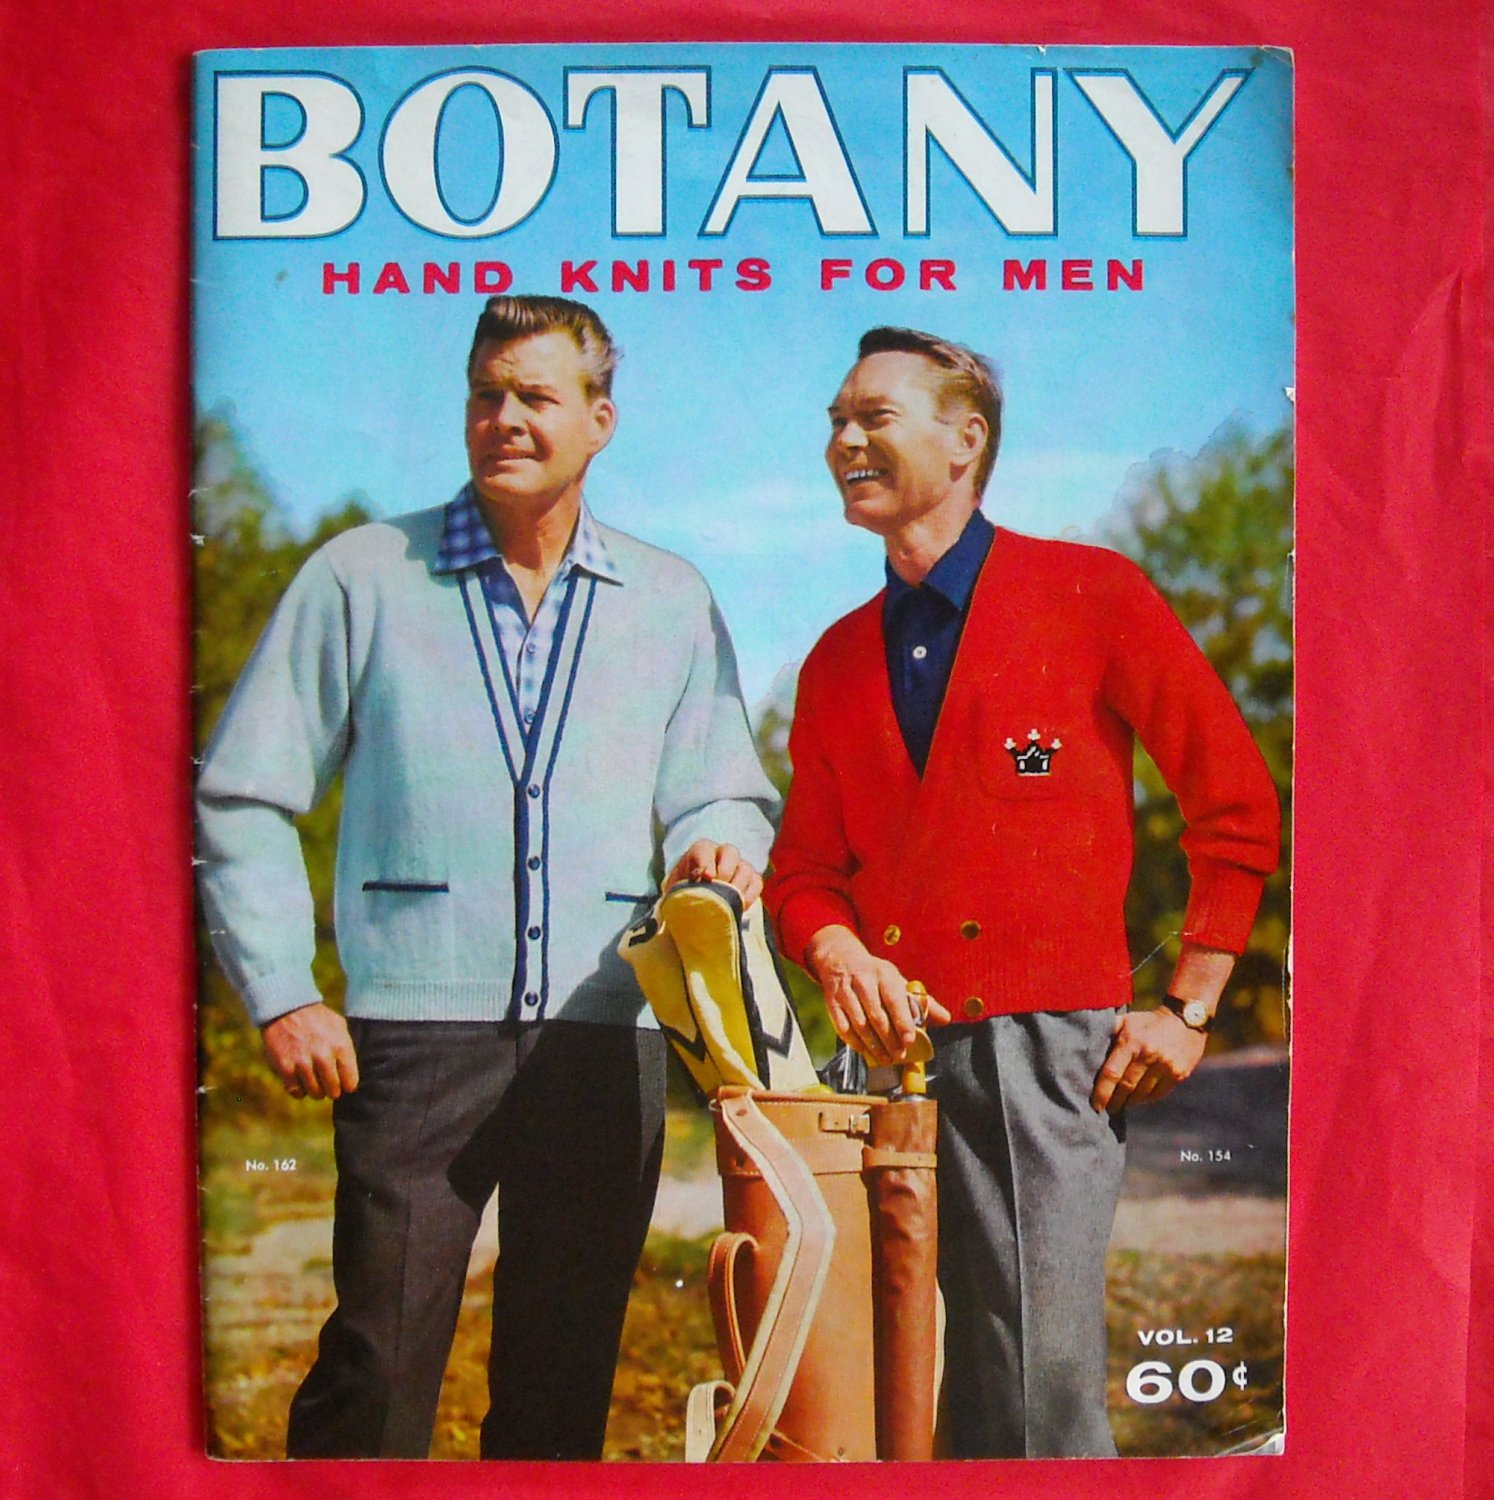 Vintage Botany Hand knits for men vol. 12 from 1958